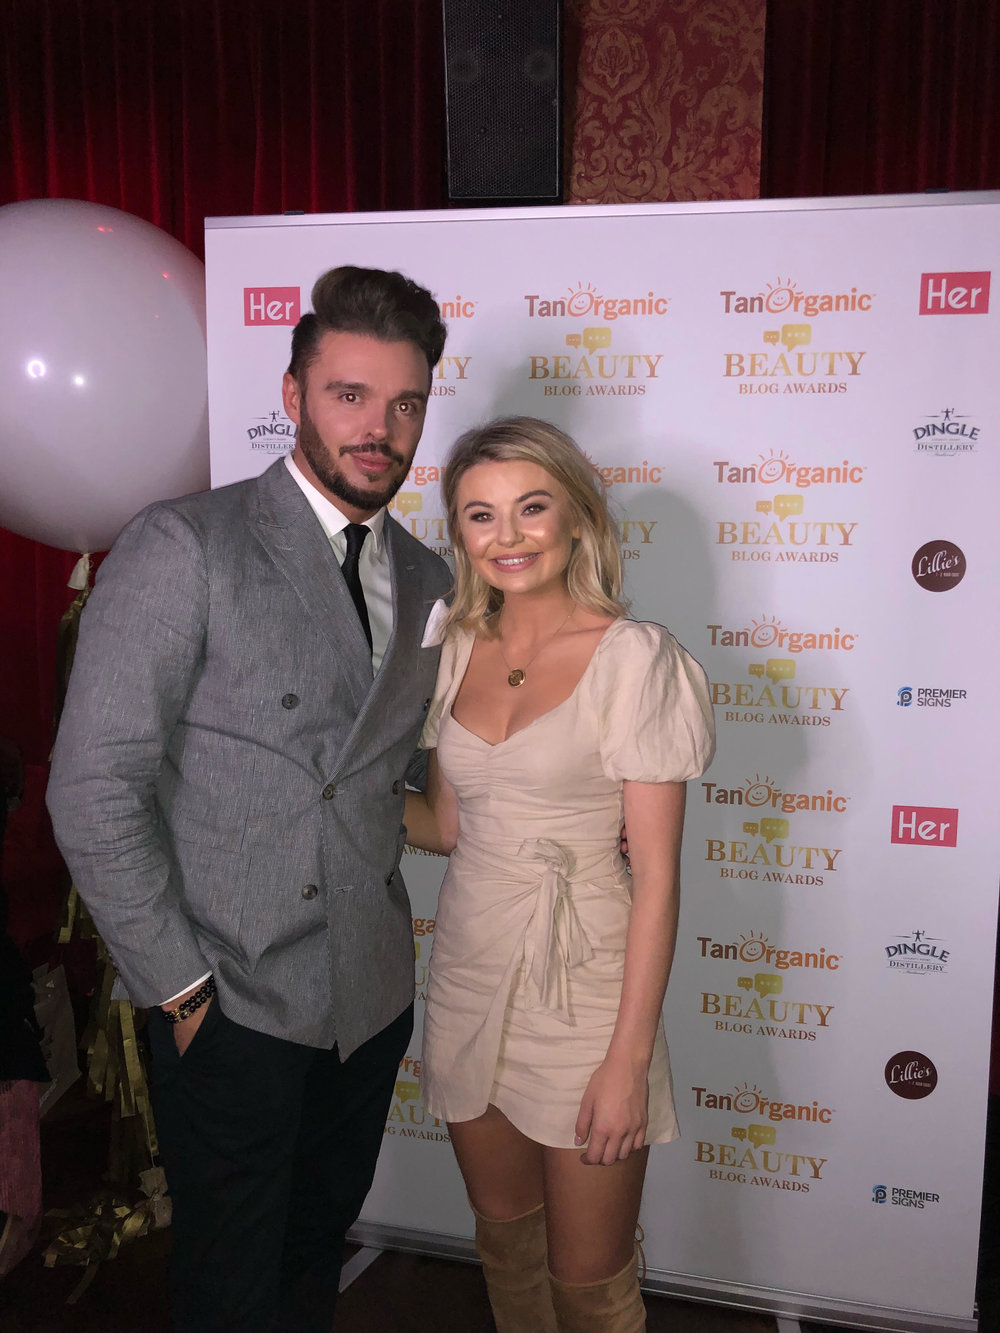 With Georgia Toff at The Beauty Blog Awards